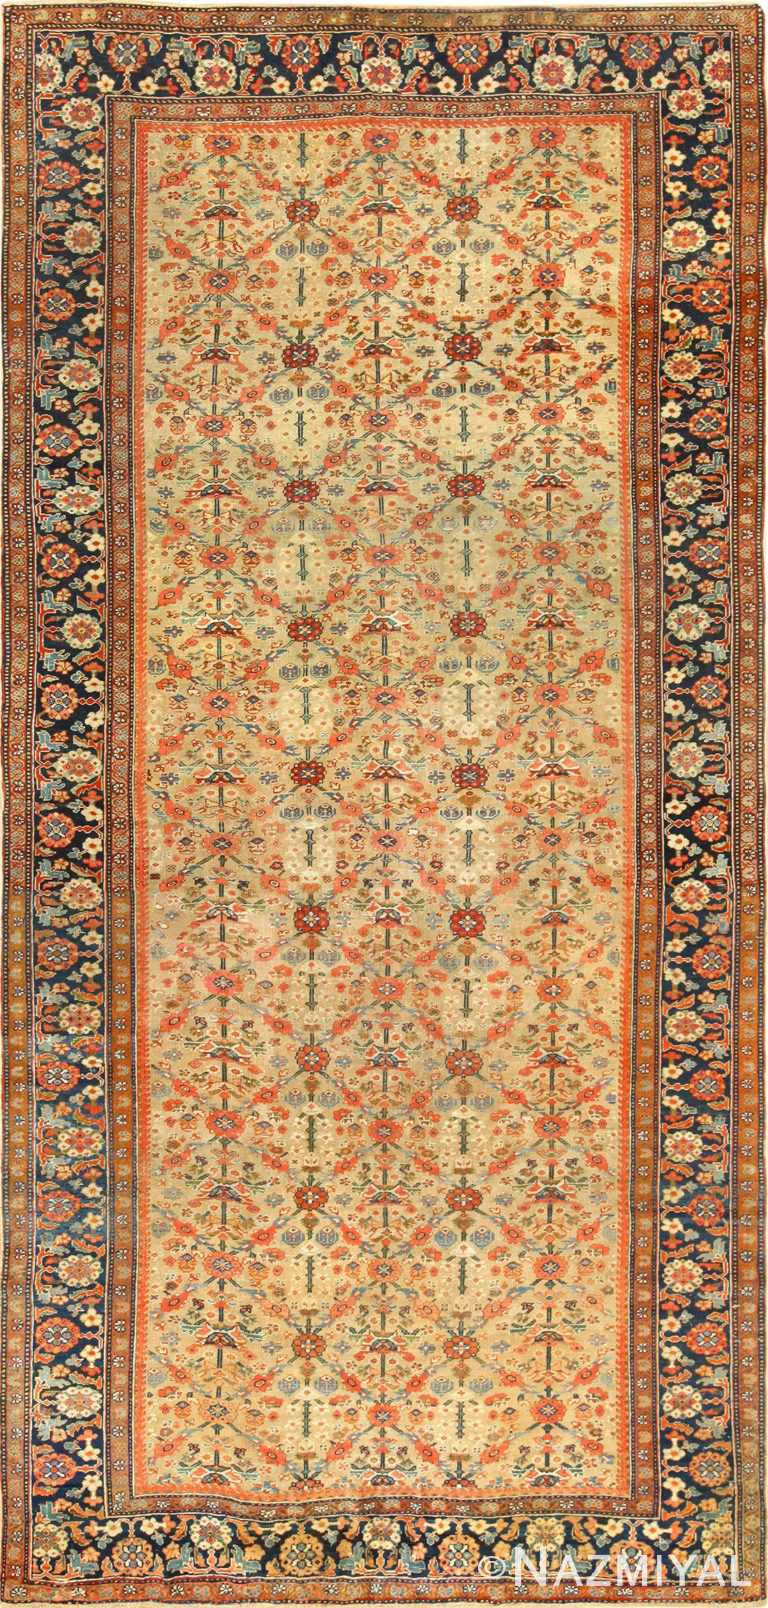 gold background antique sultanabad persian rug 49360 Nazmiyal